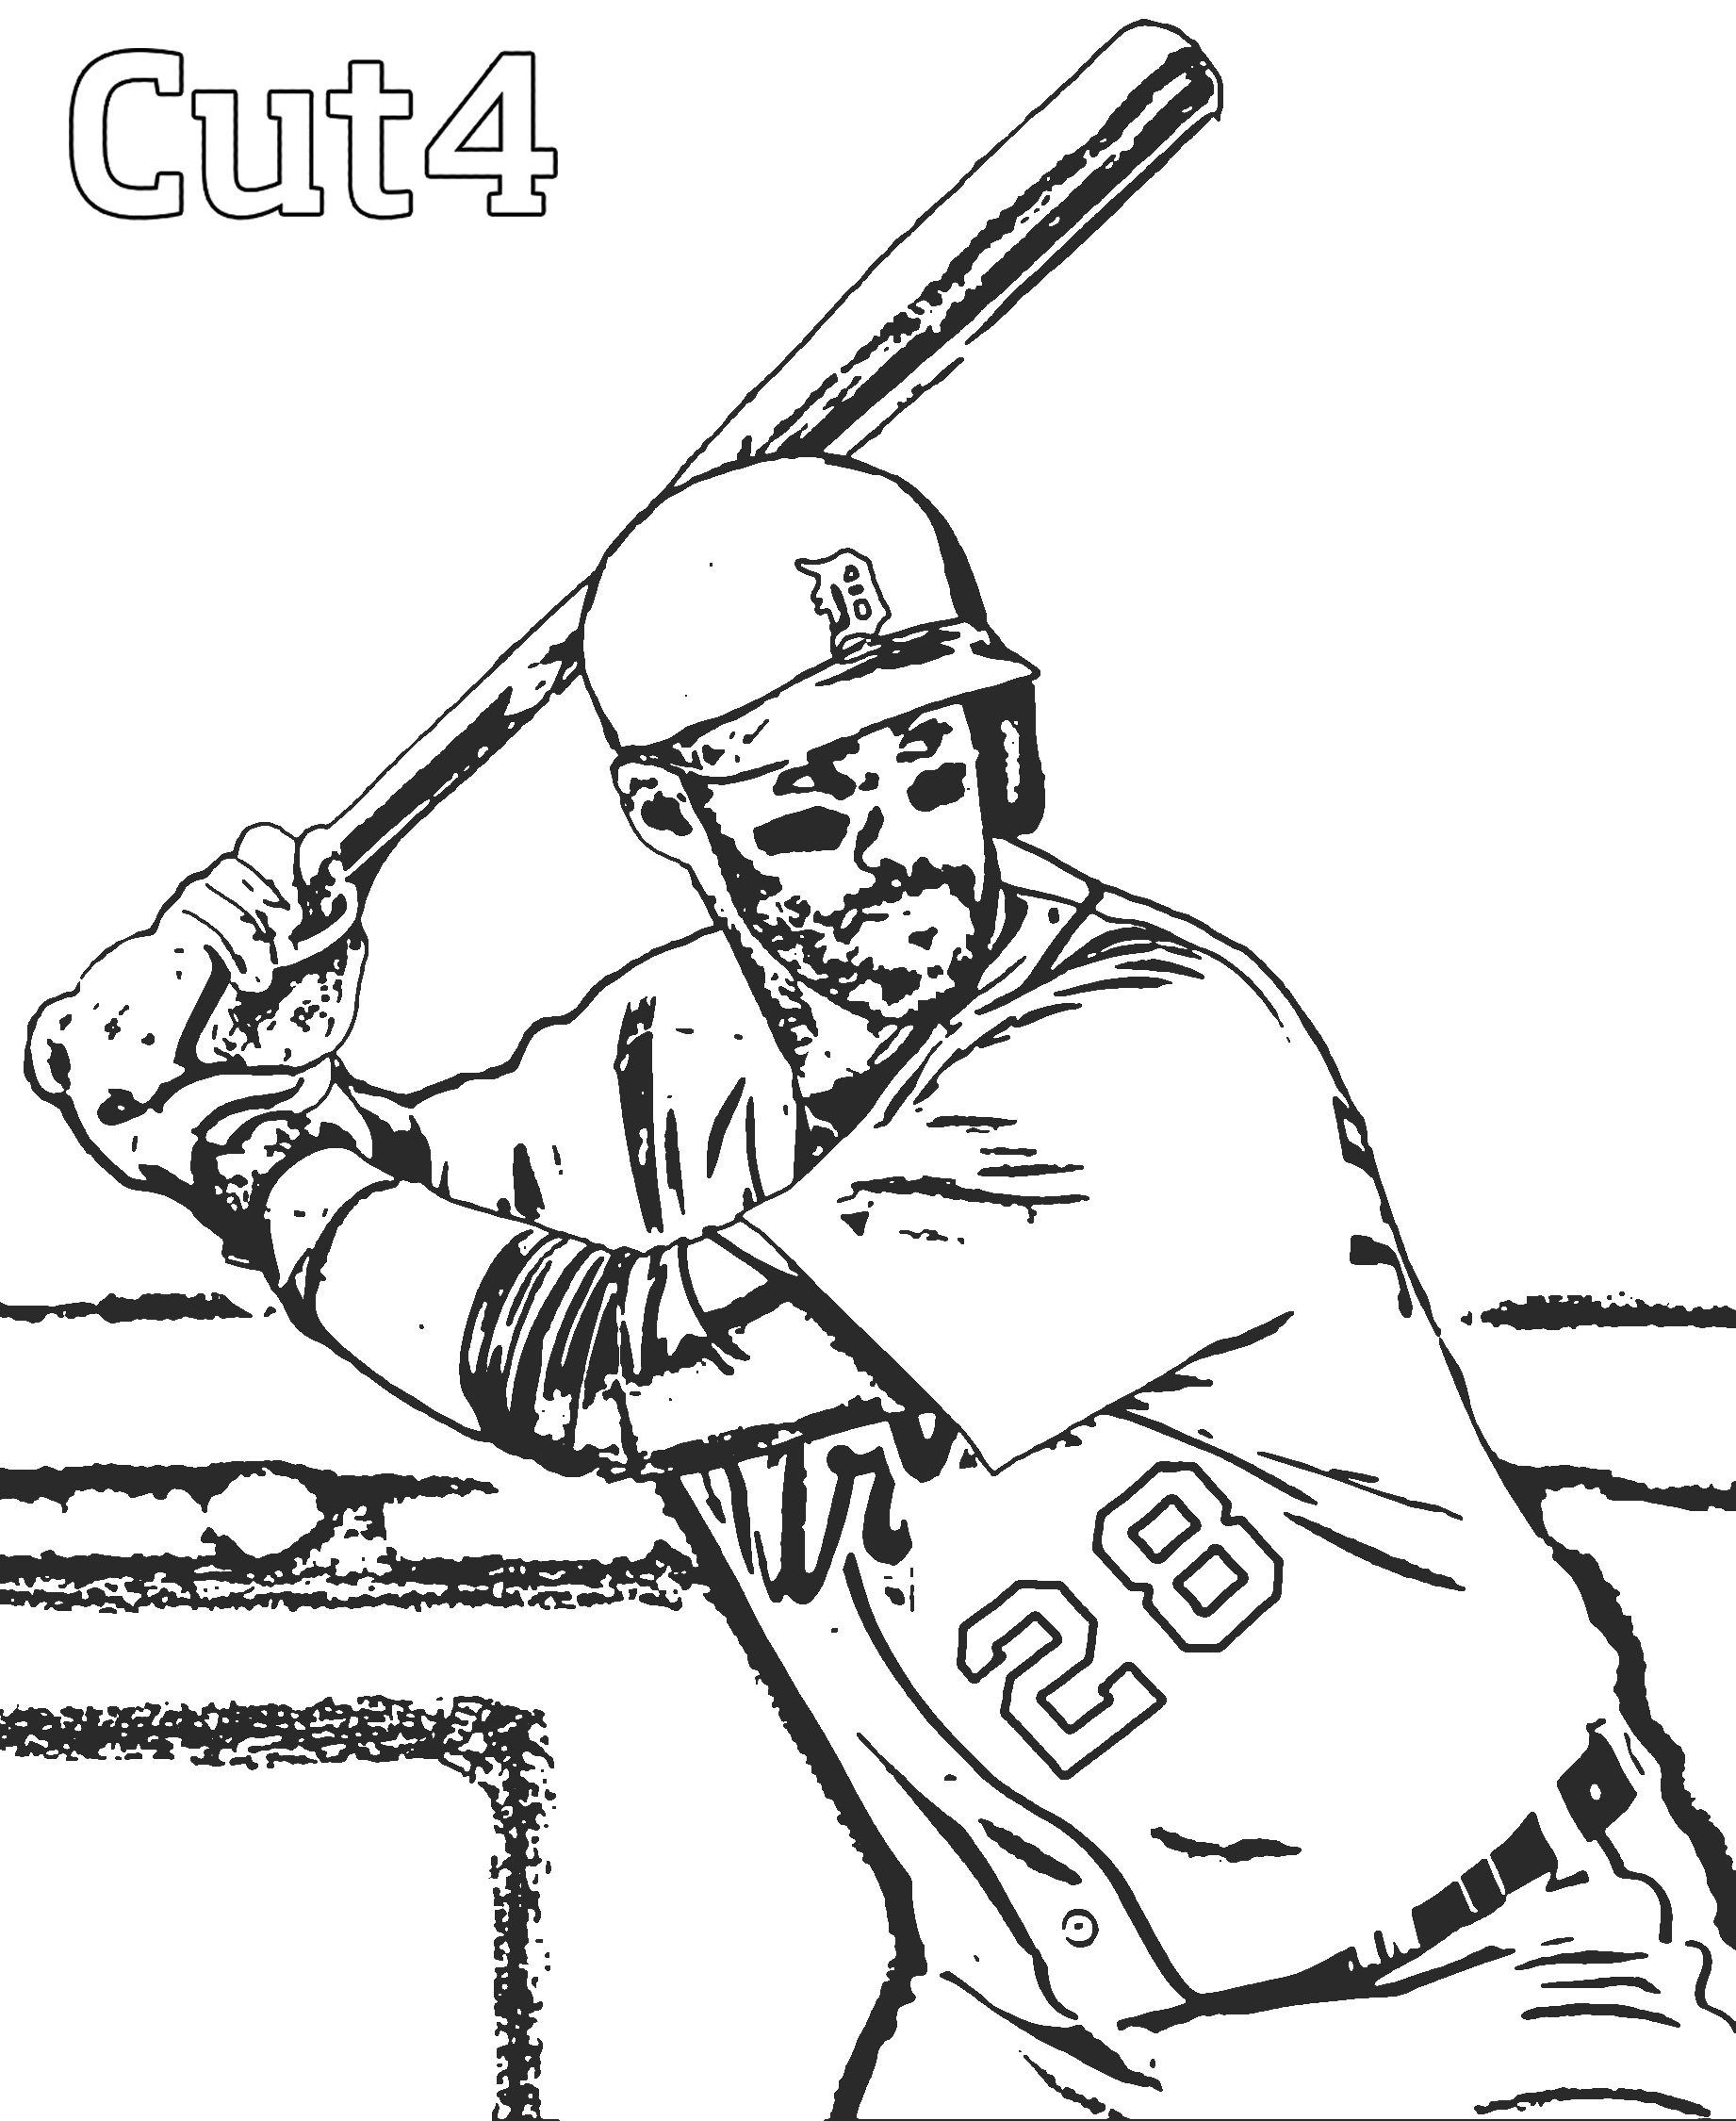 photograph relating to Printable Cubs Logo called Baseball Emblem Coloring Web pages at  Absolutely free for